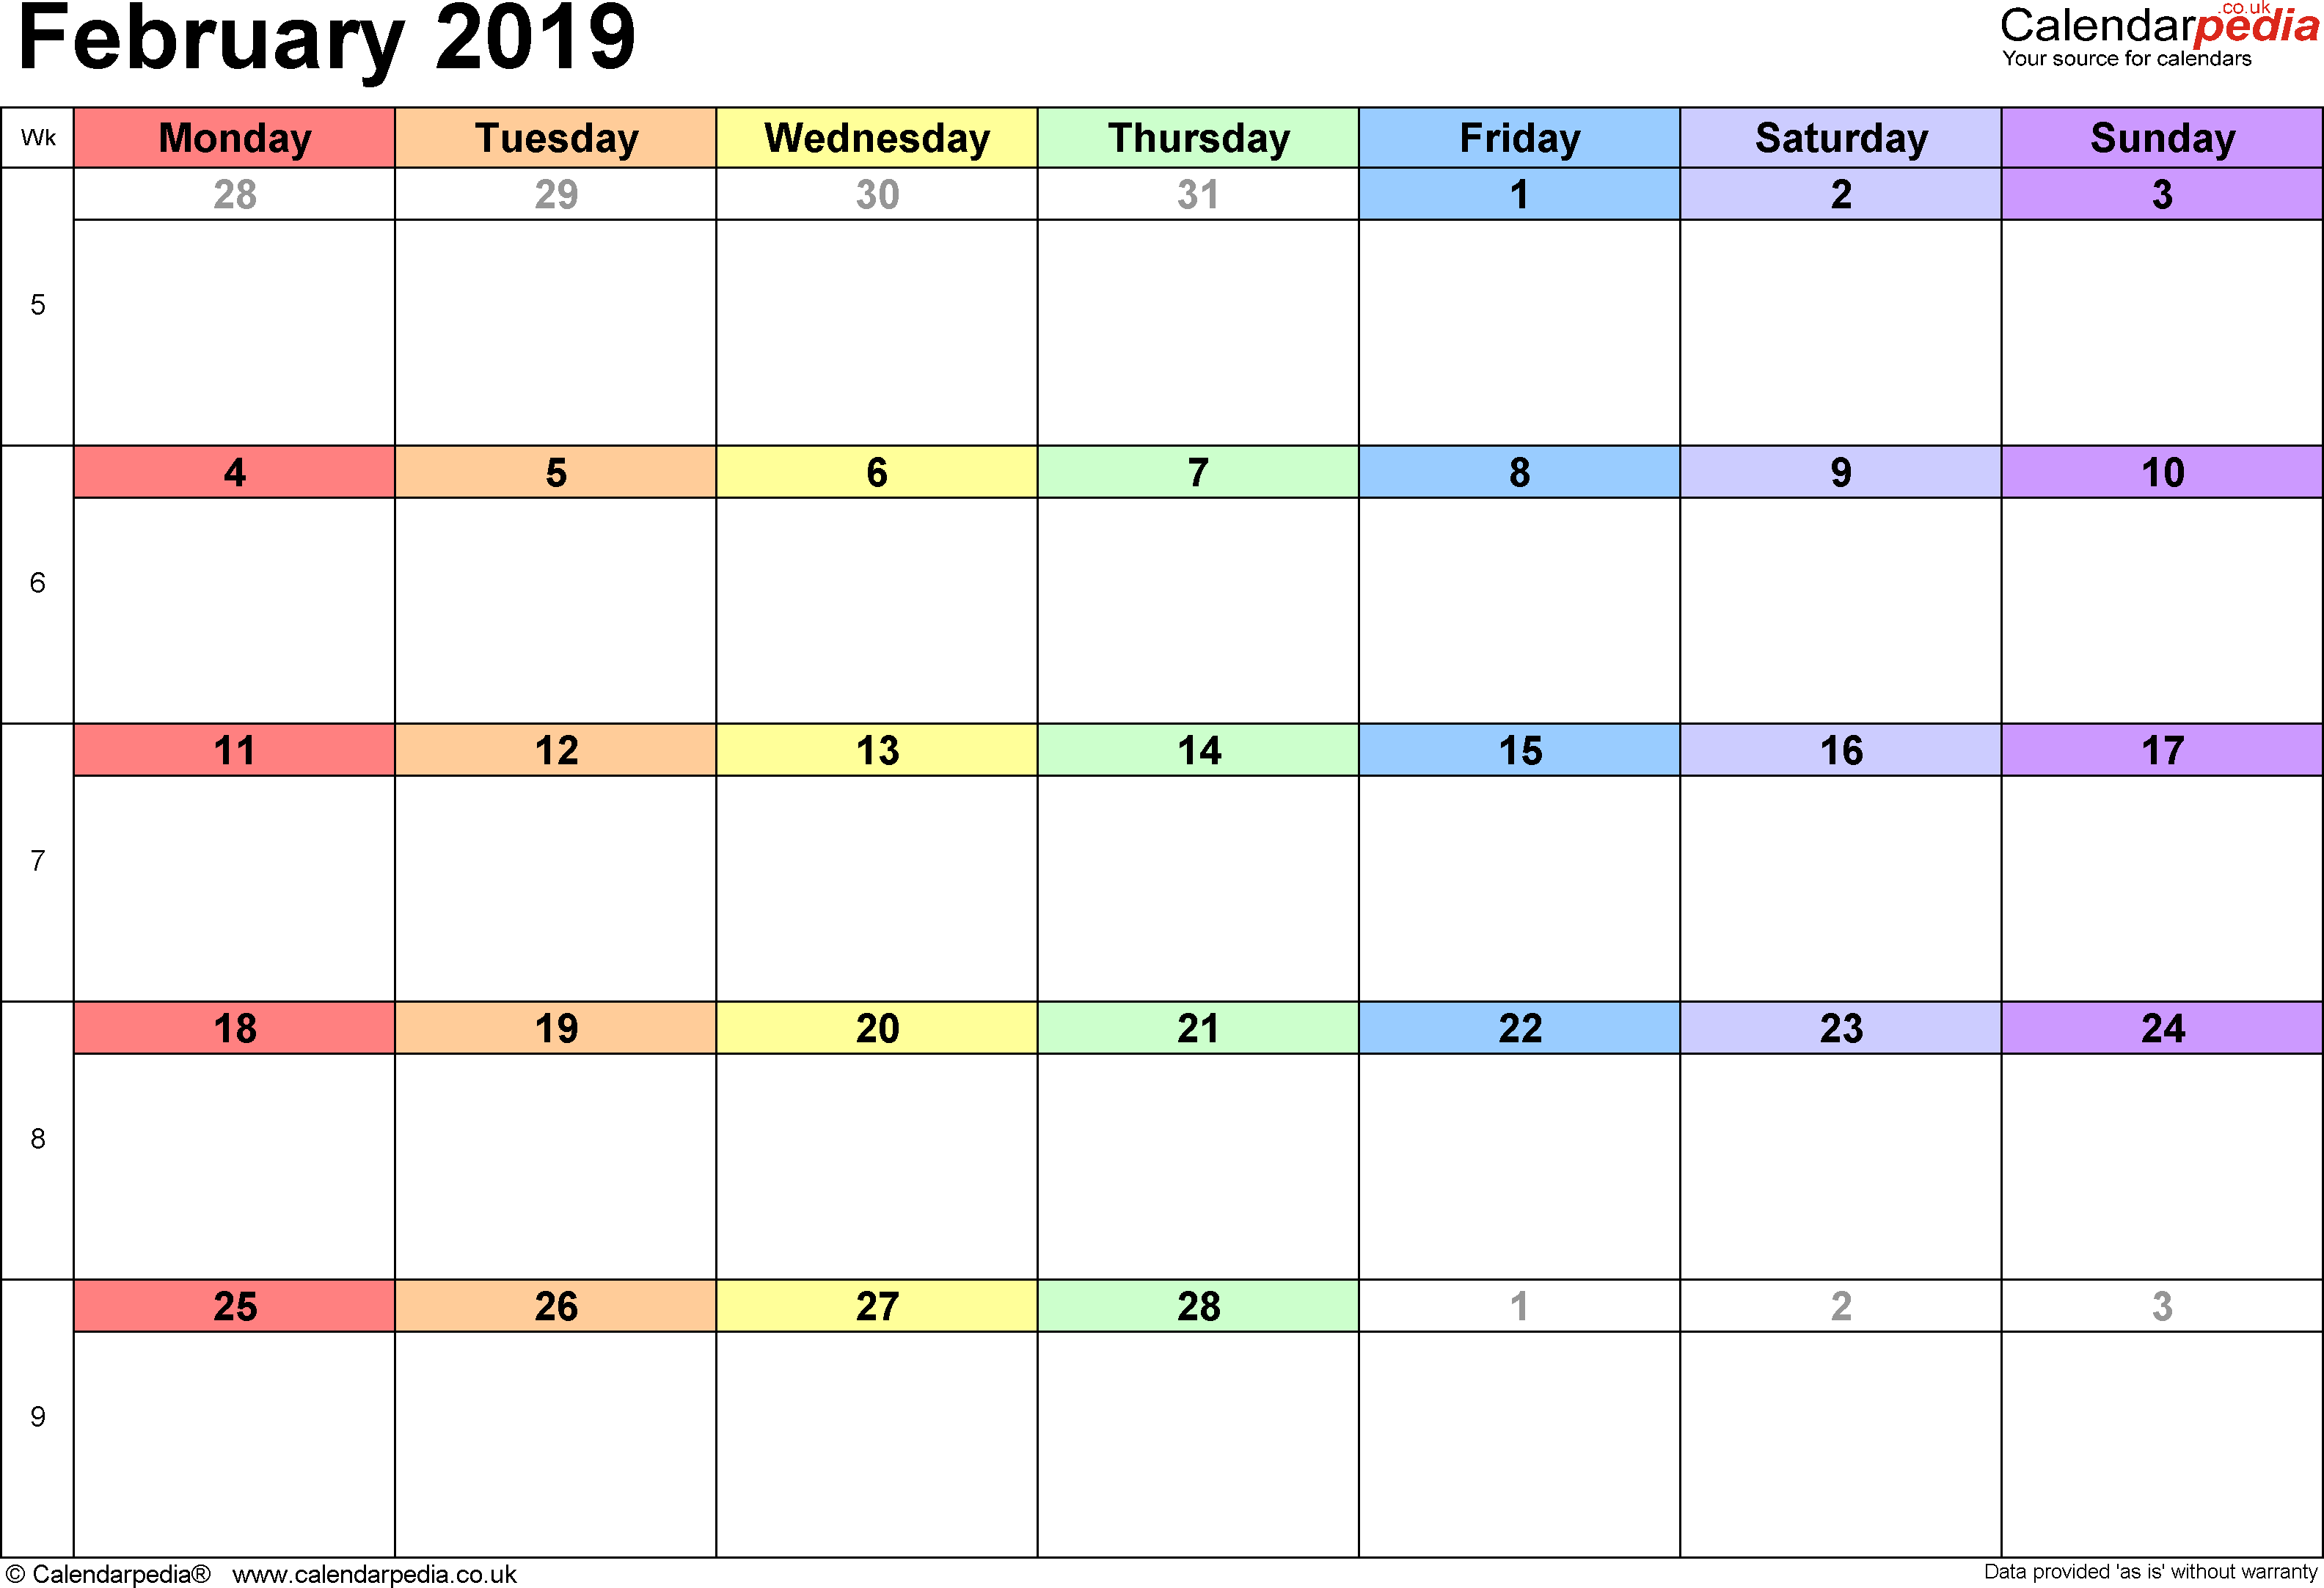 Calendar February 2019 Uk Bank Holidays Excel Pdf Word Templates